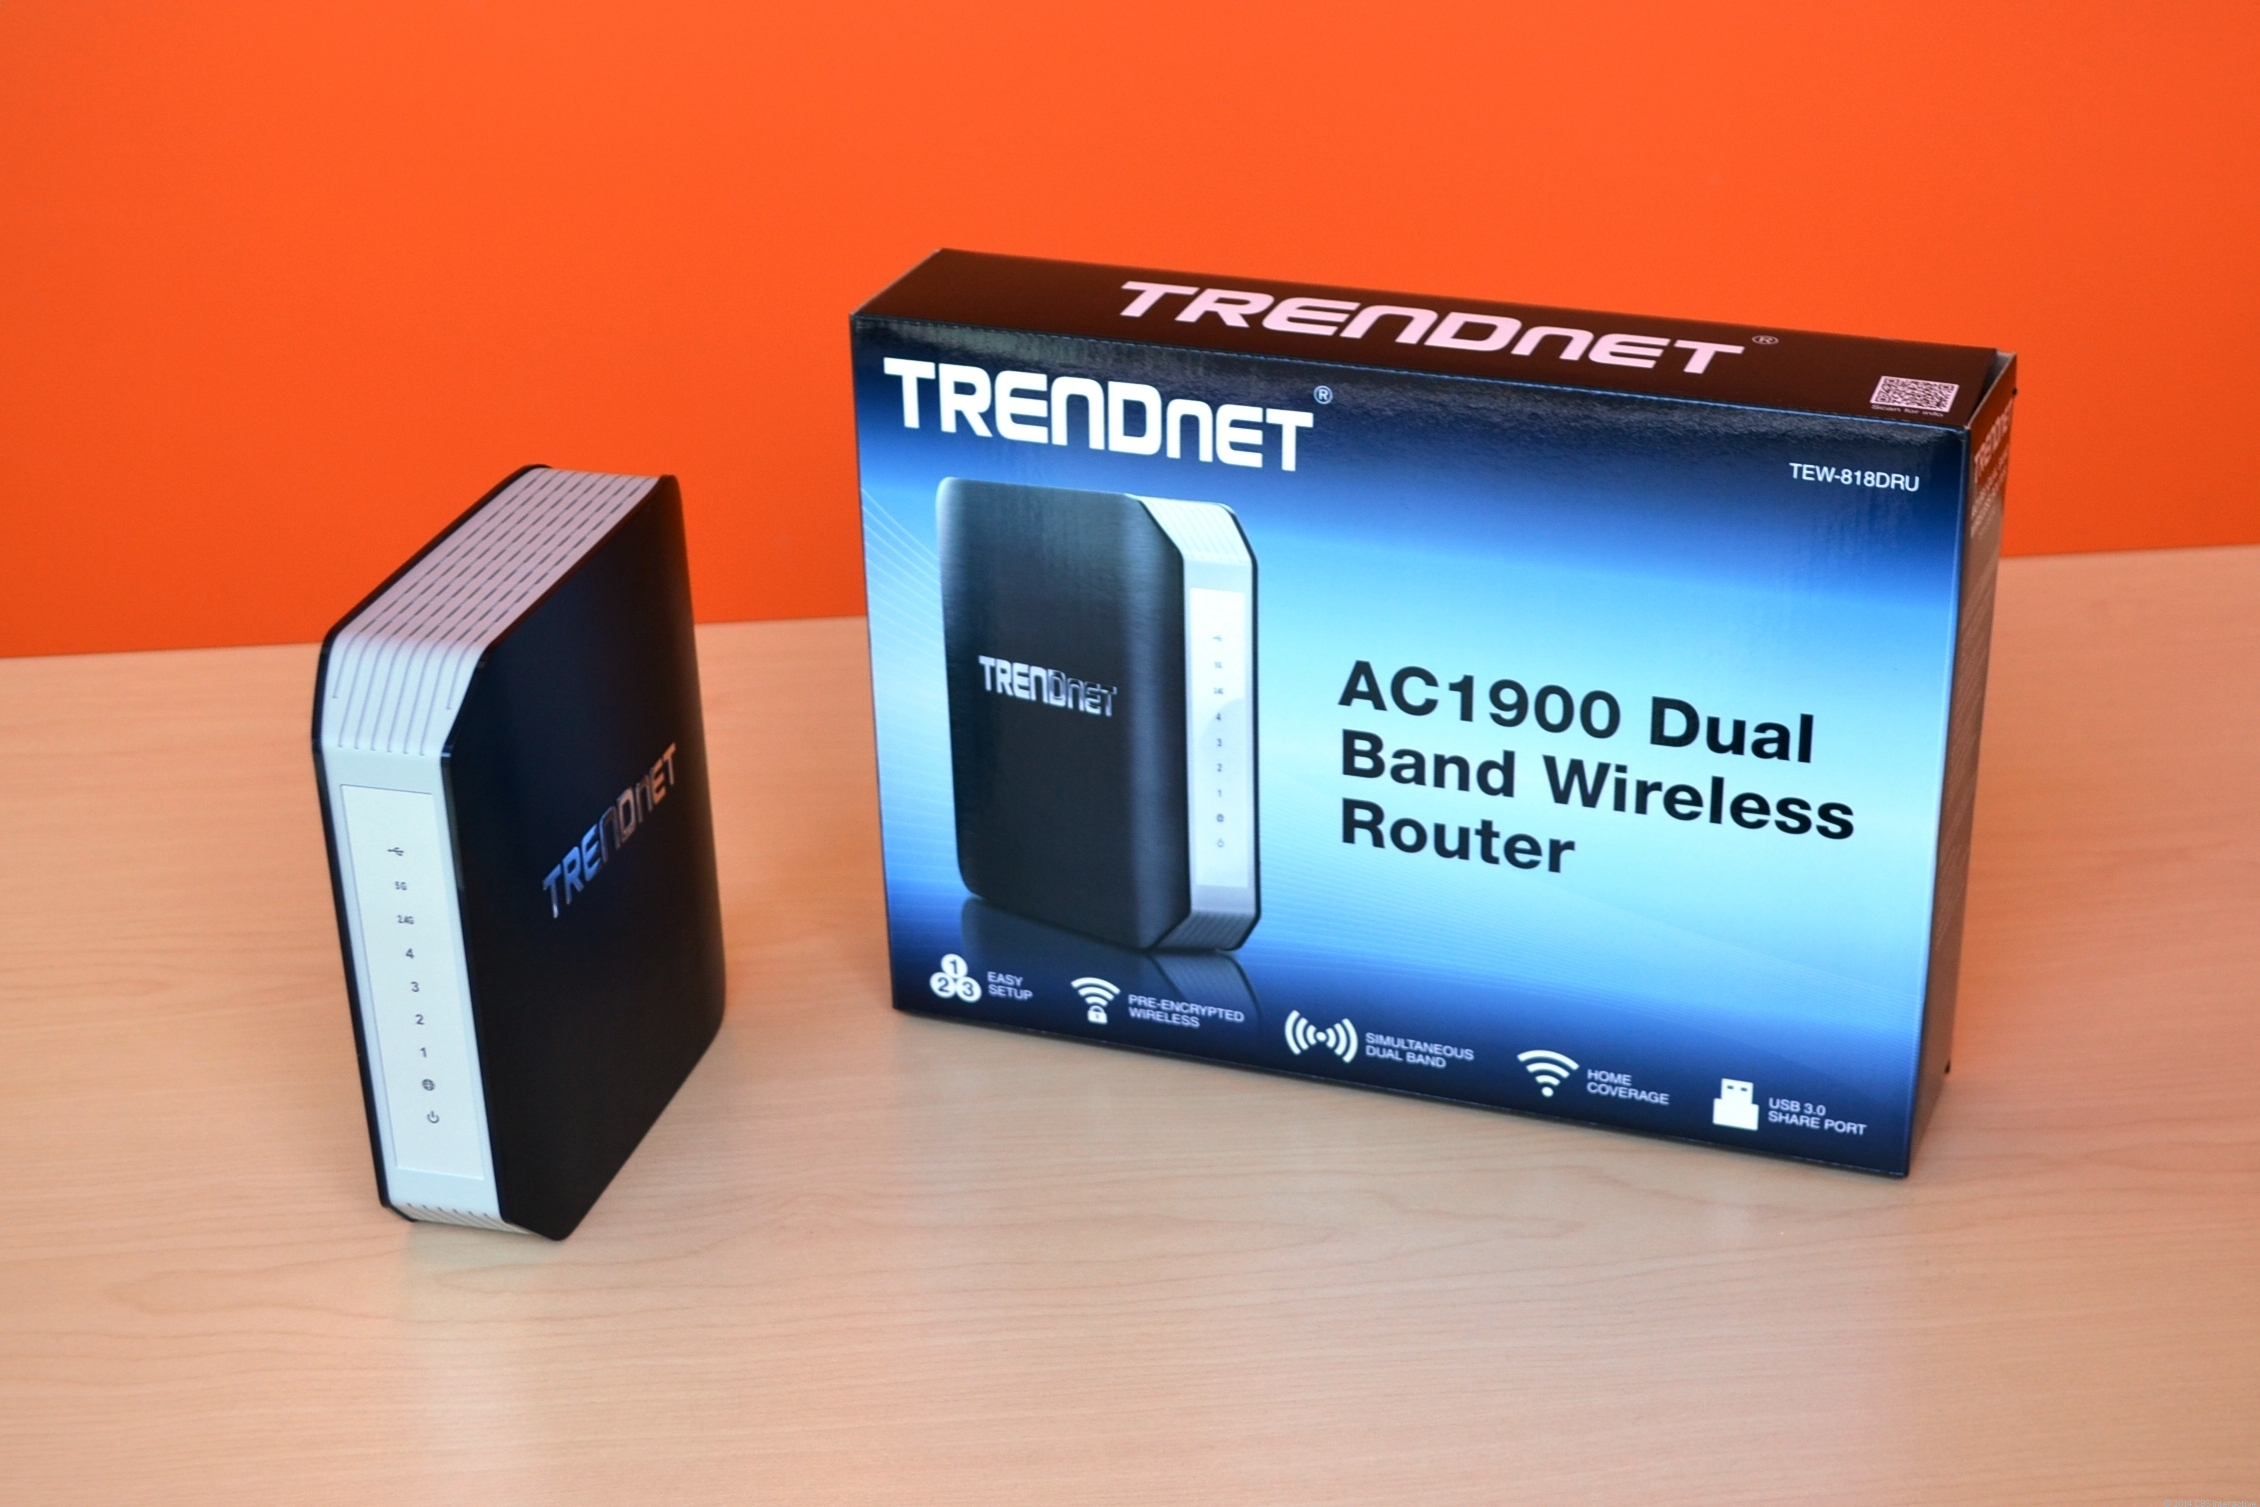 Rendnet AC1900 Dual Band Wireless Router (Image 6 of 10)